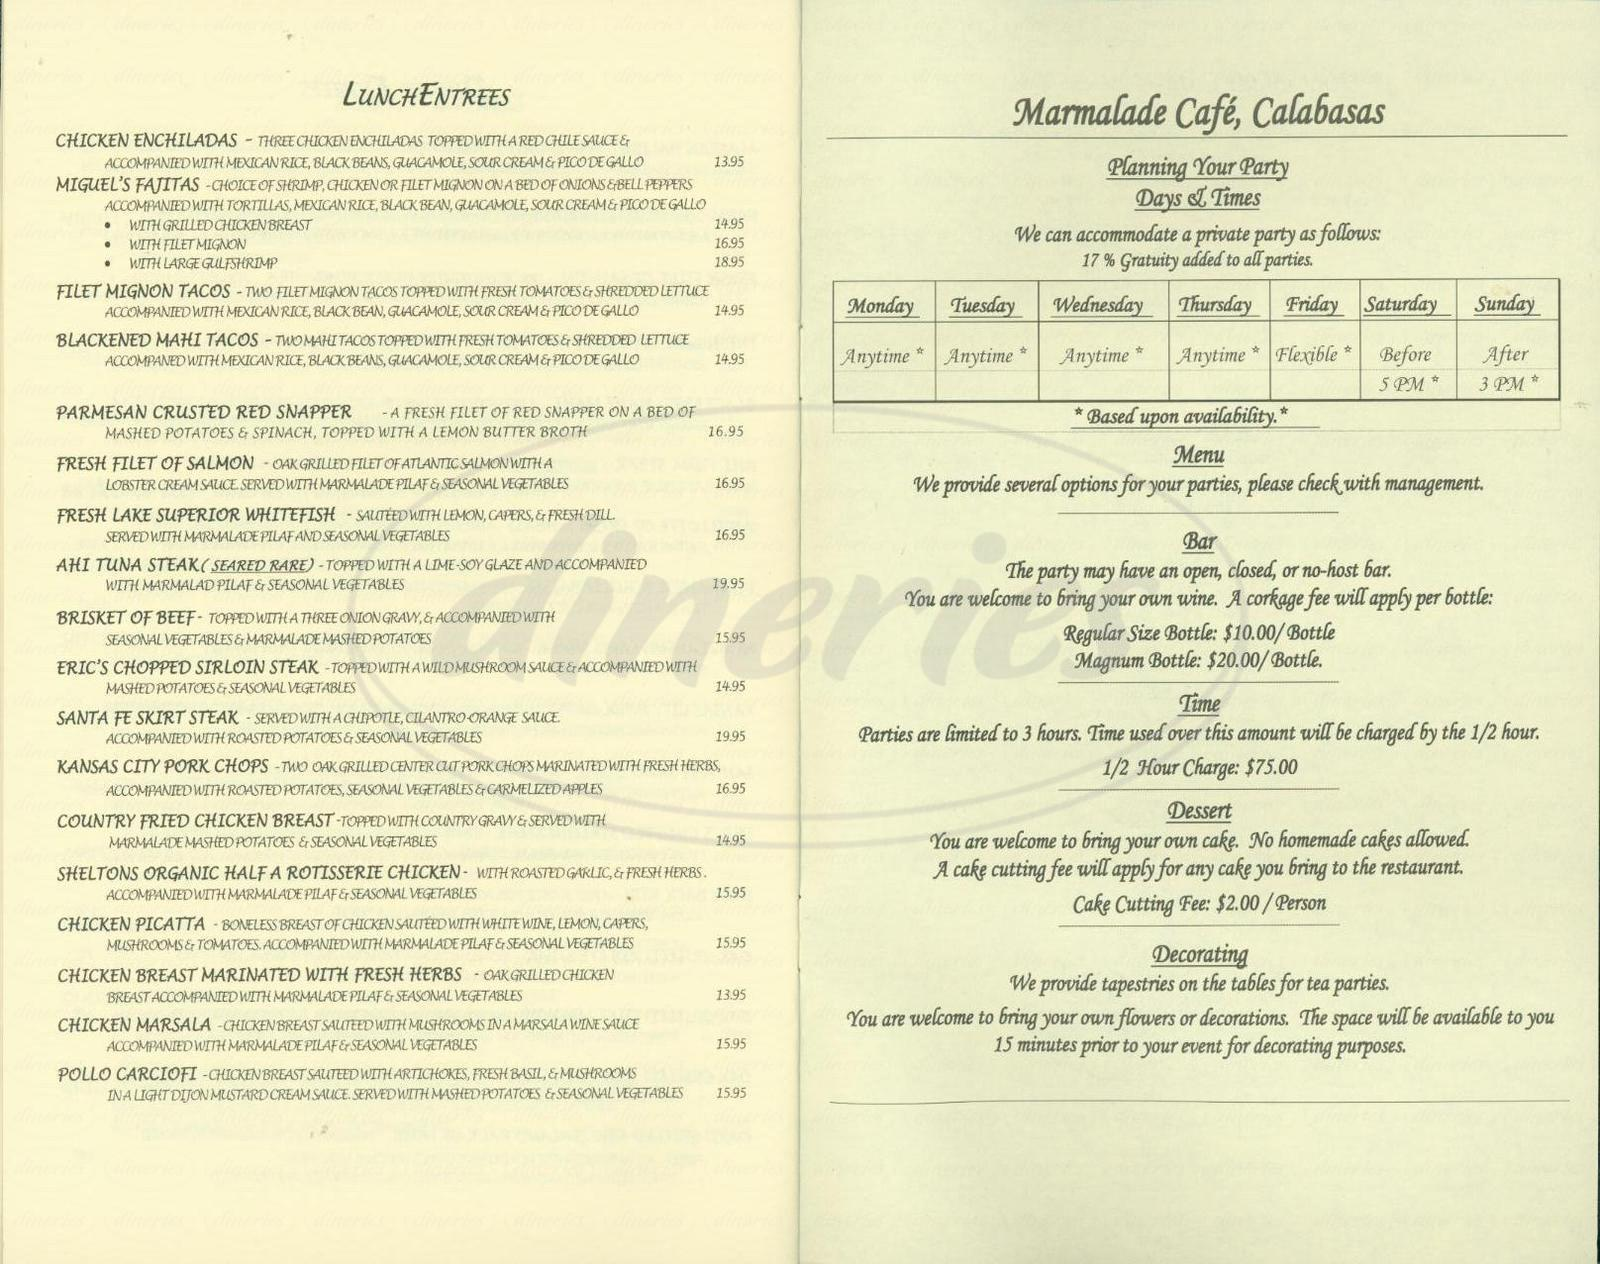 Permalink to Marmalade Cafe Menu